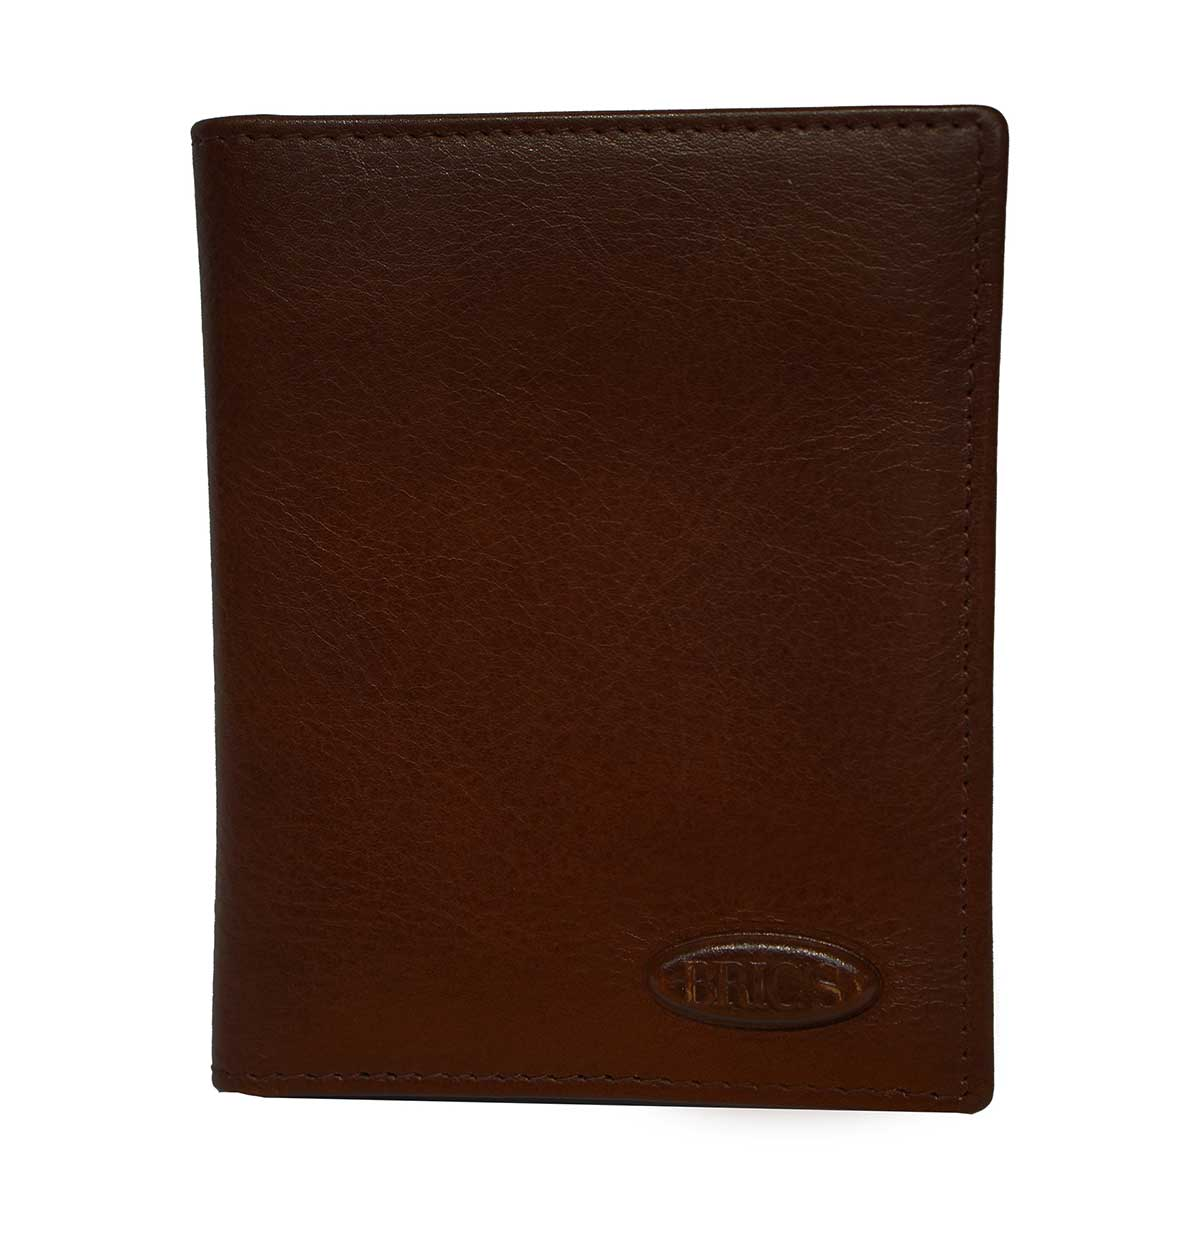 Monte Rosa Vertical Wallet With Id by Brics (Color: Dark Brown)